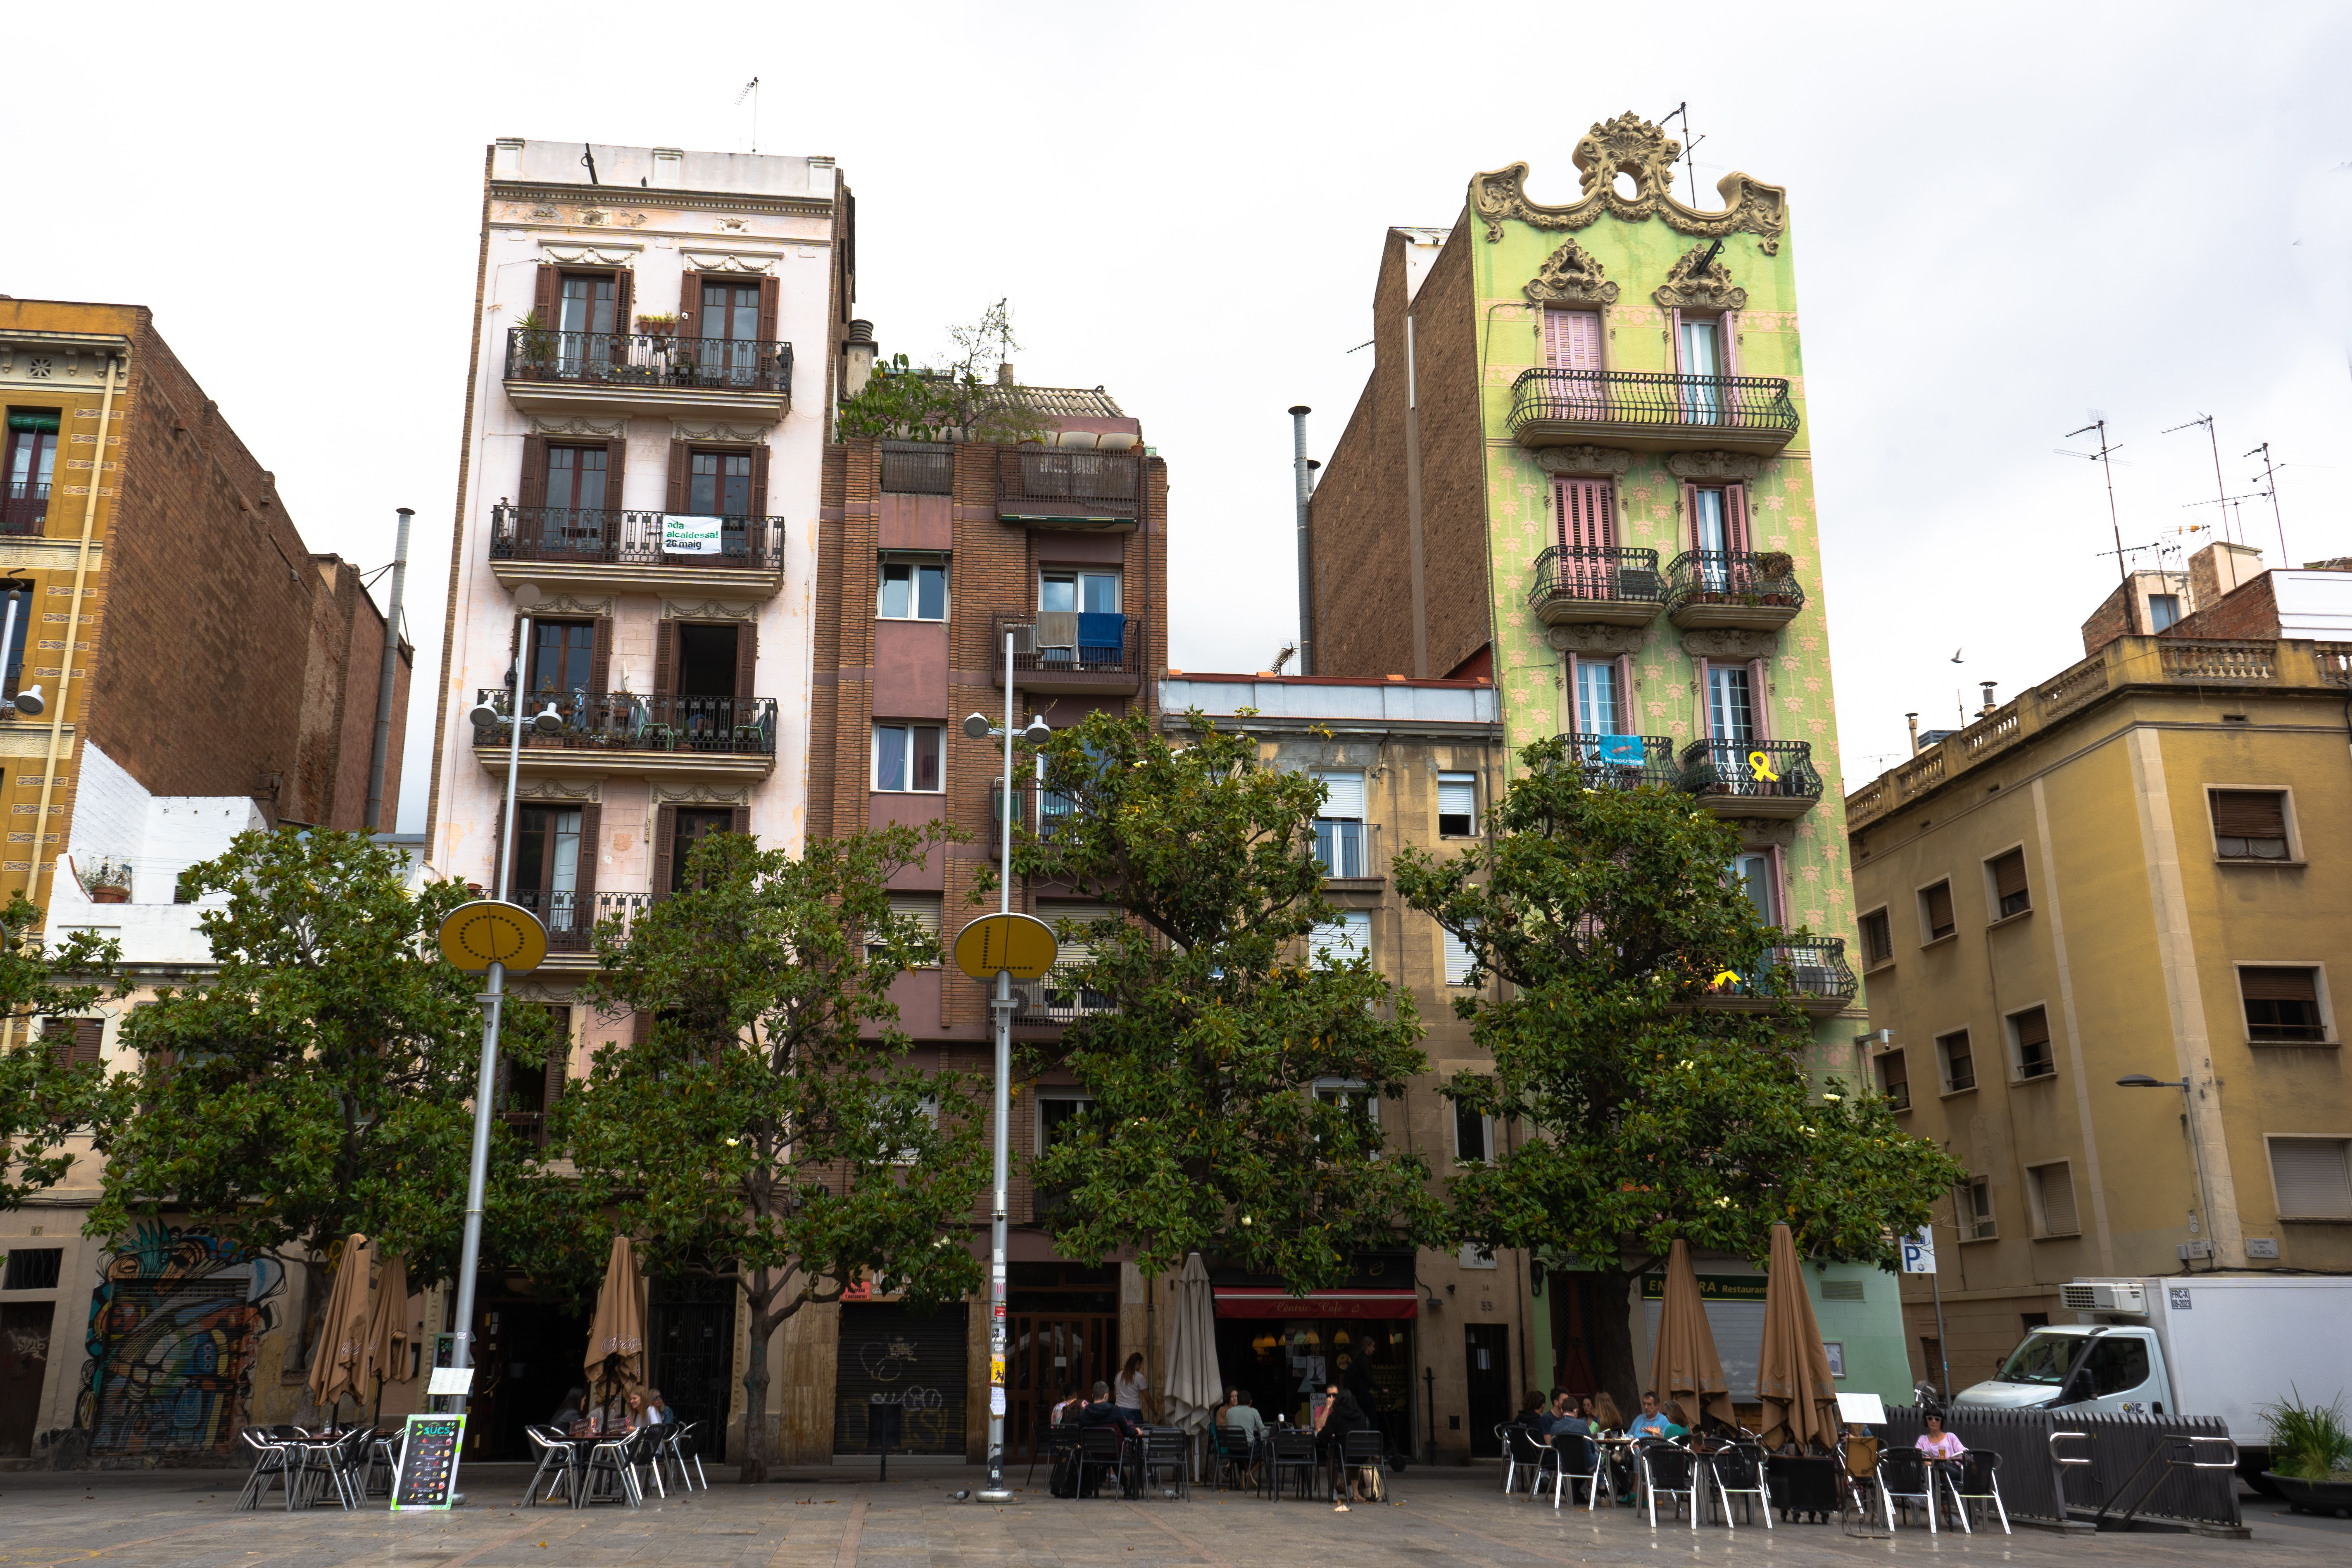 Wide shot of colorful apartment buildings in Plaza del Sol